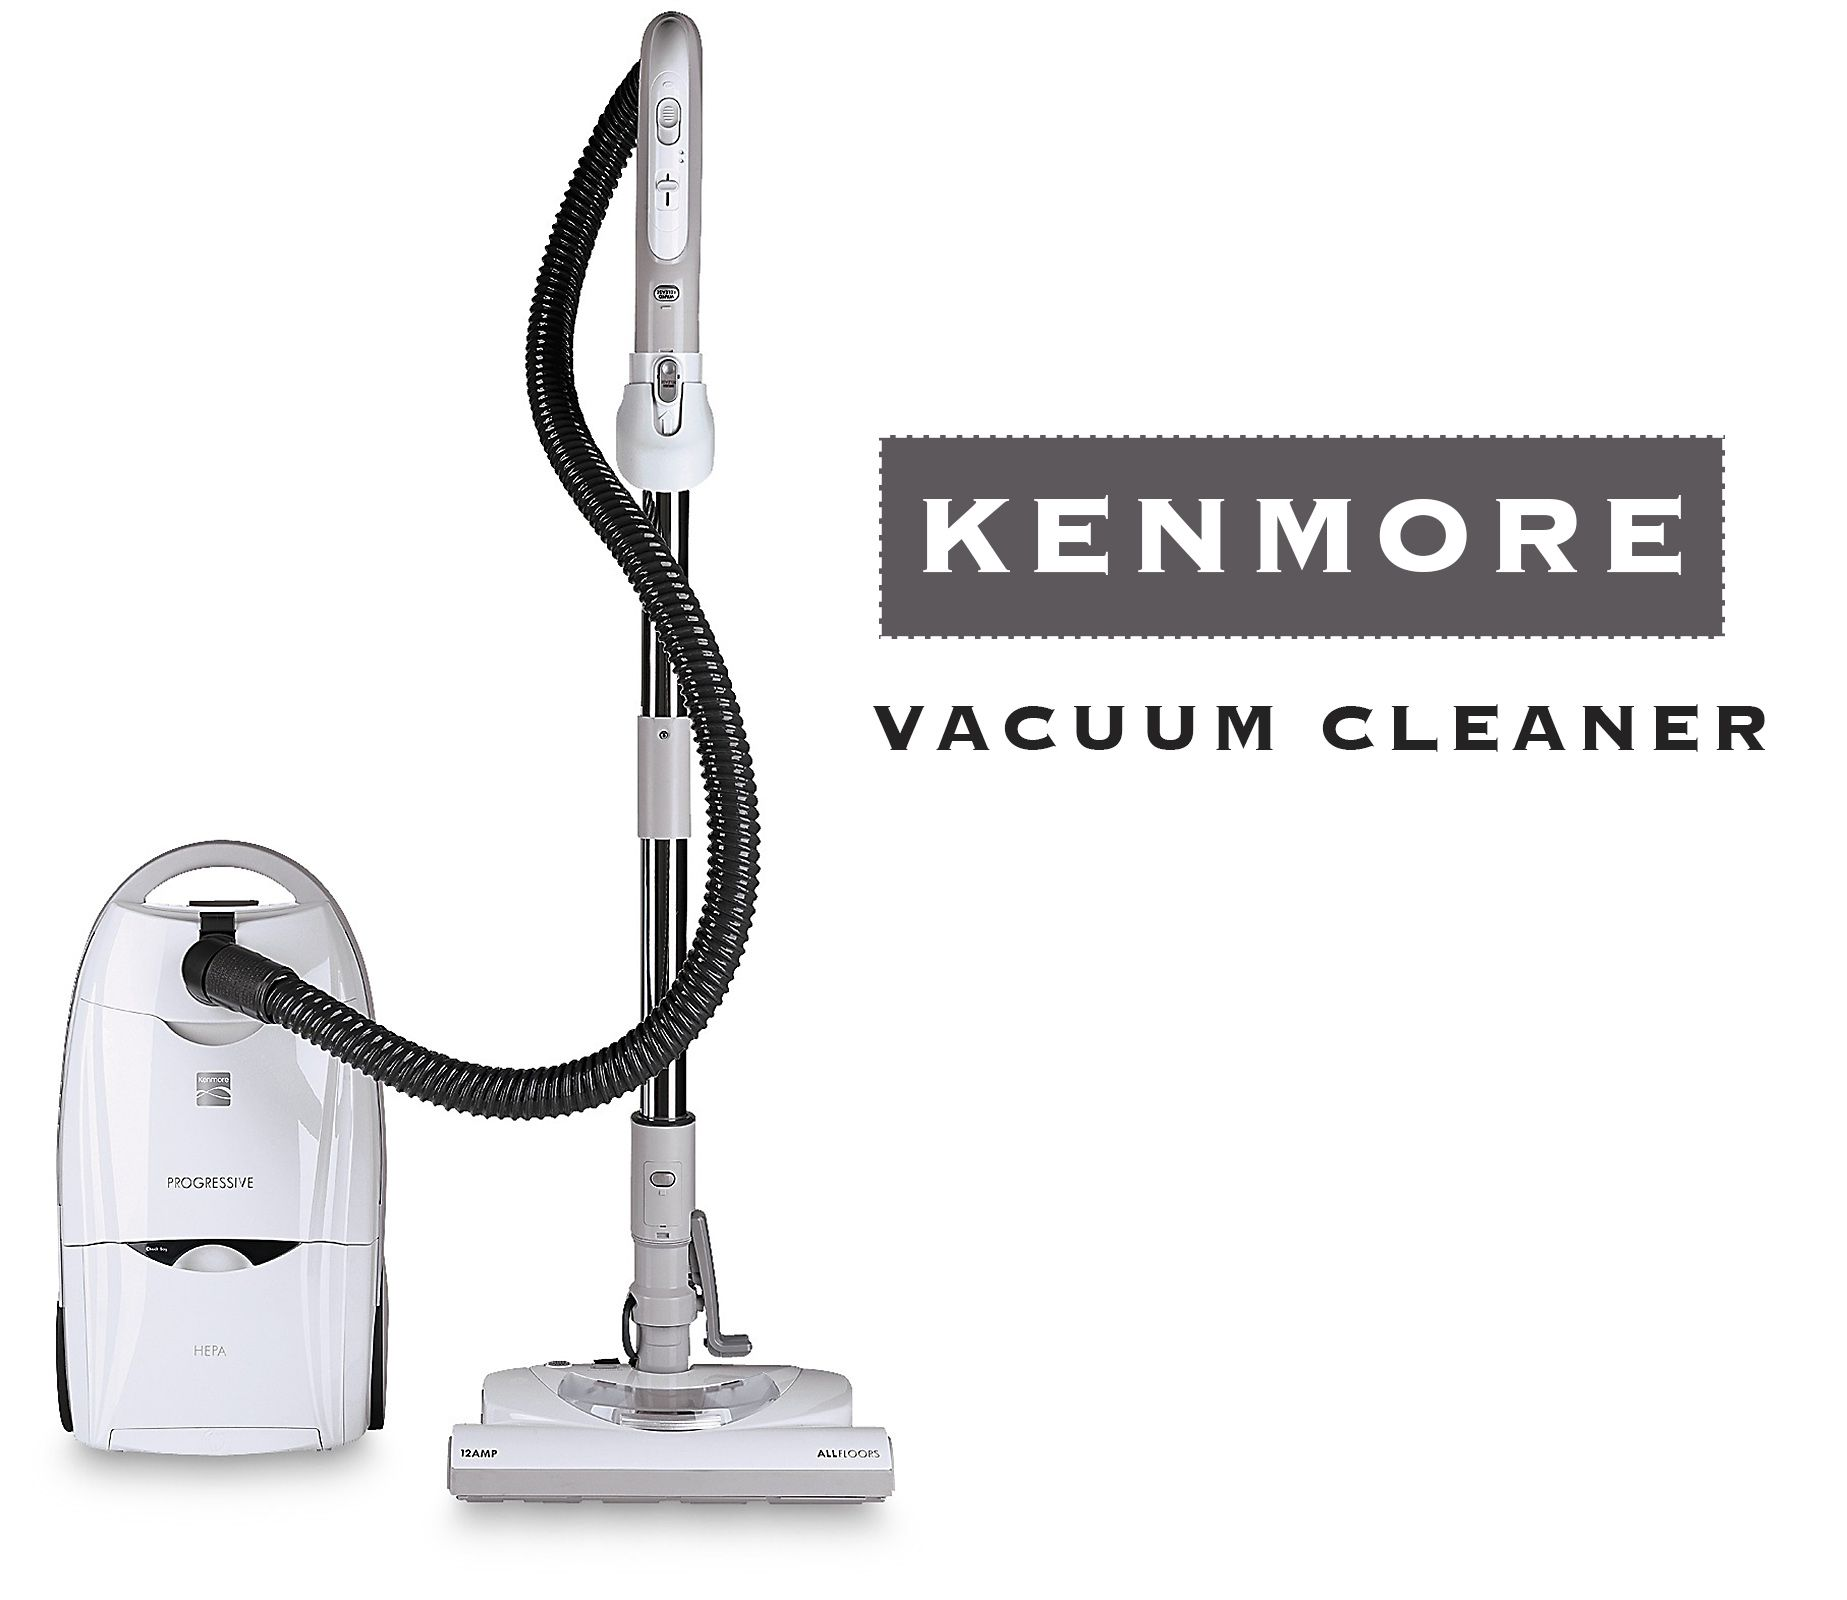 This Time I Want To Write About Kenmore Which Is Very Familiar To Many Customers Together With Giving You Some Kenmore V Vacuum Cleaner Kenmore Vacuum Vacuum